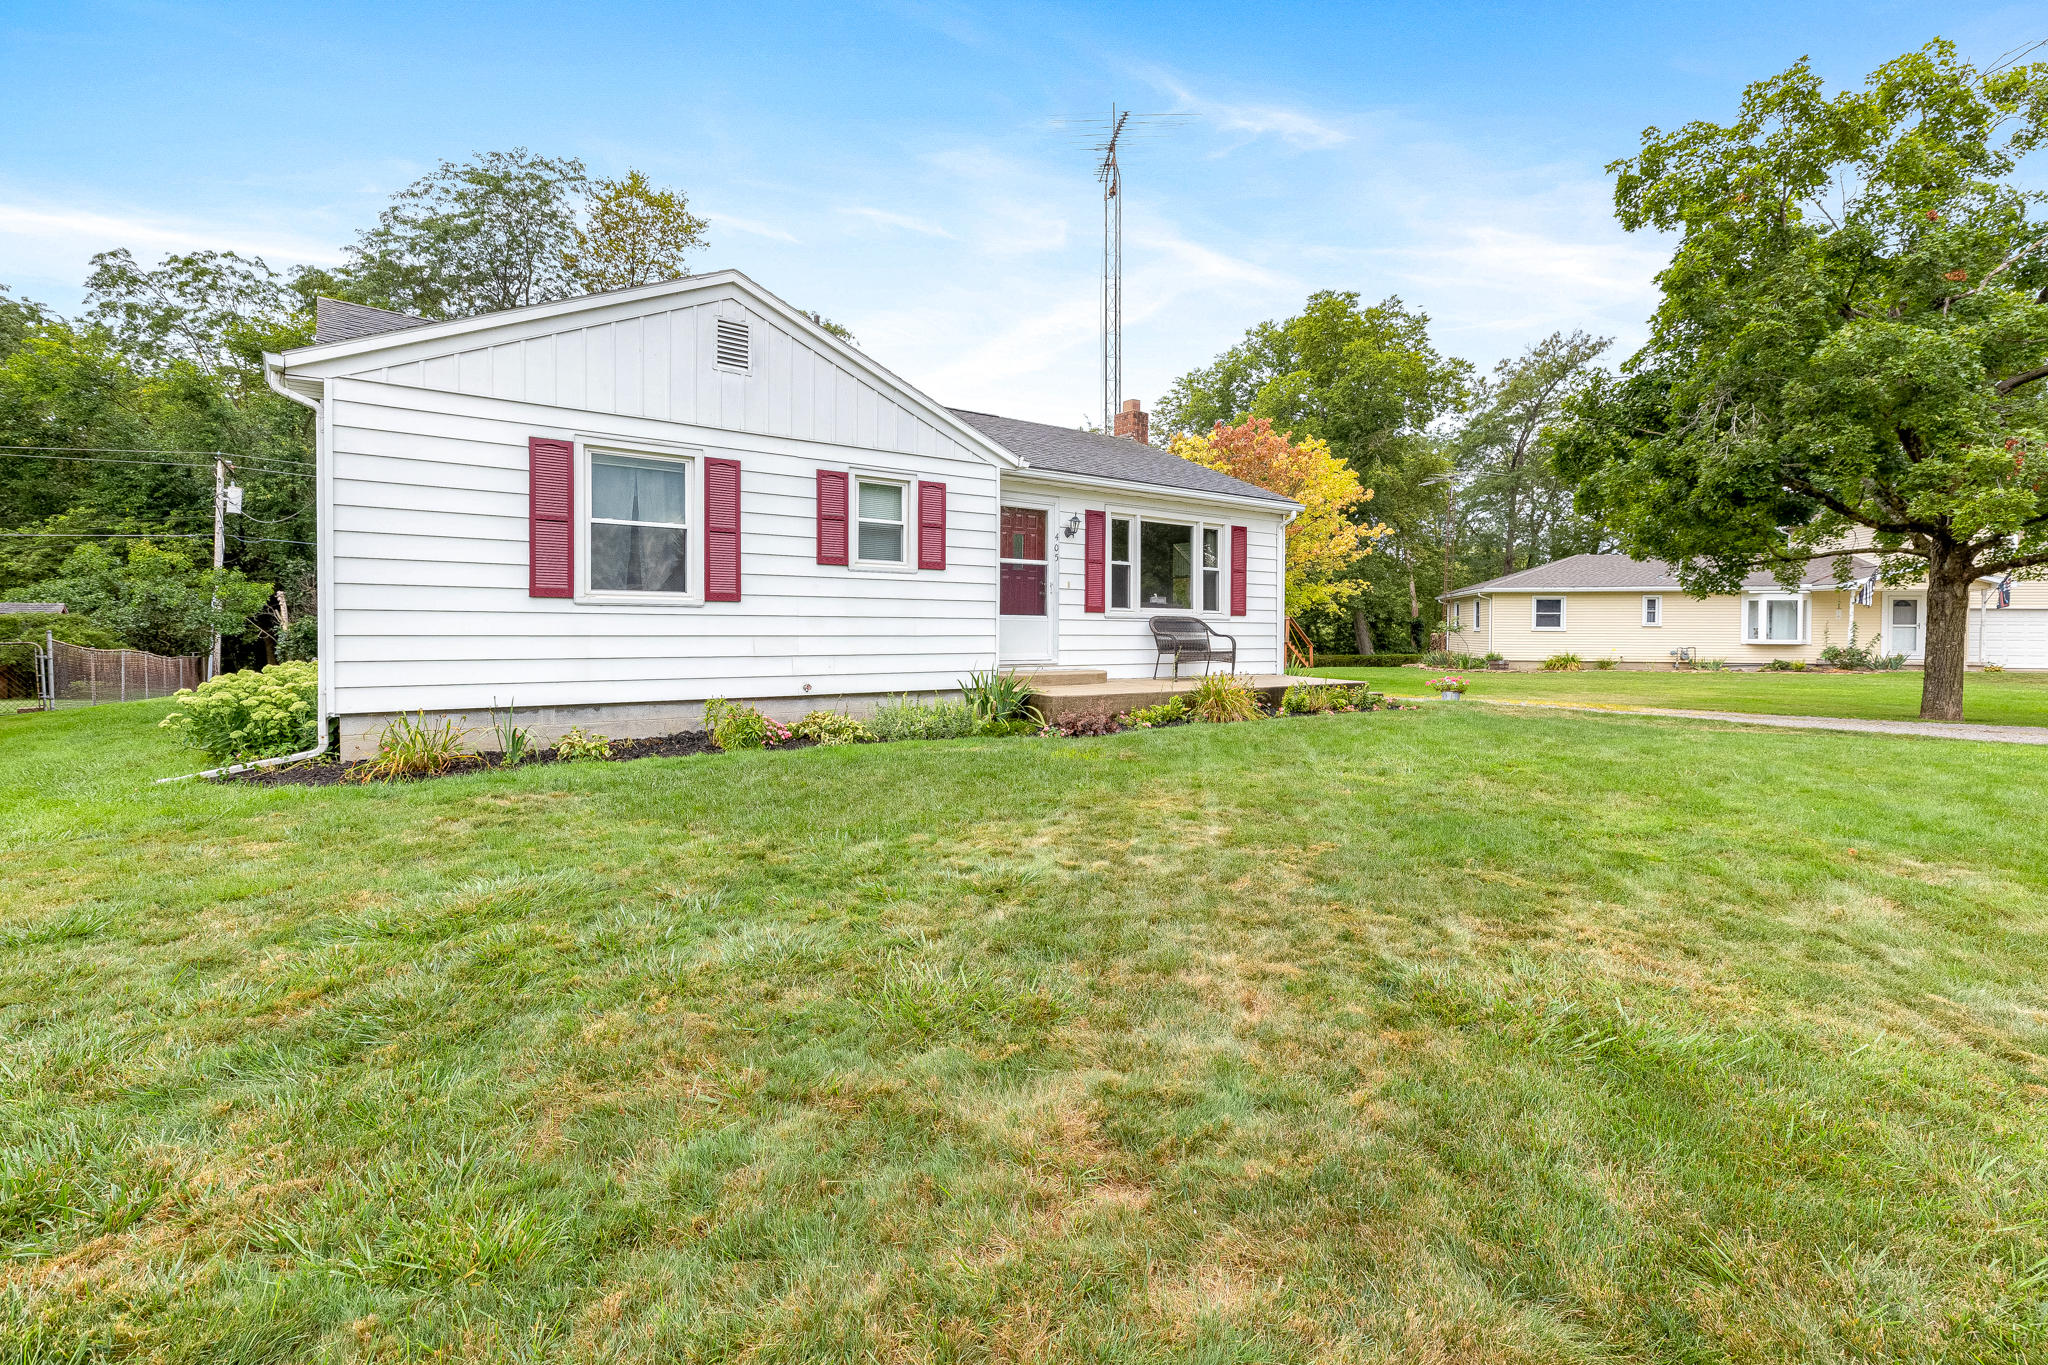 Photo 1 for 405 Russell St De Graff, OH 43318